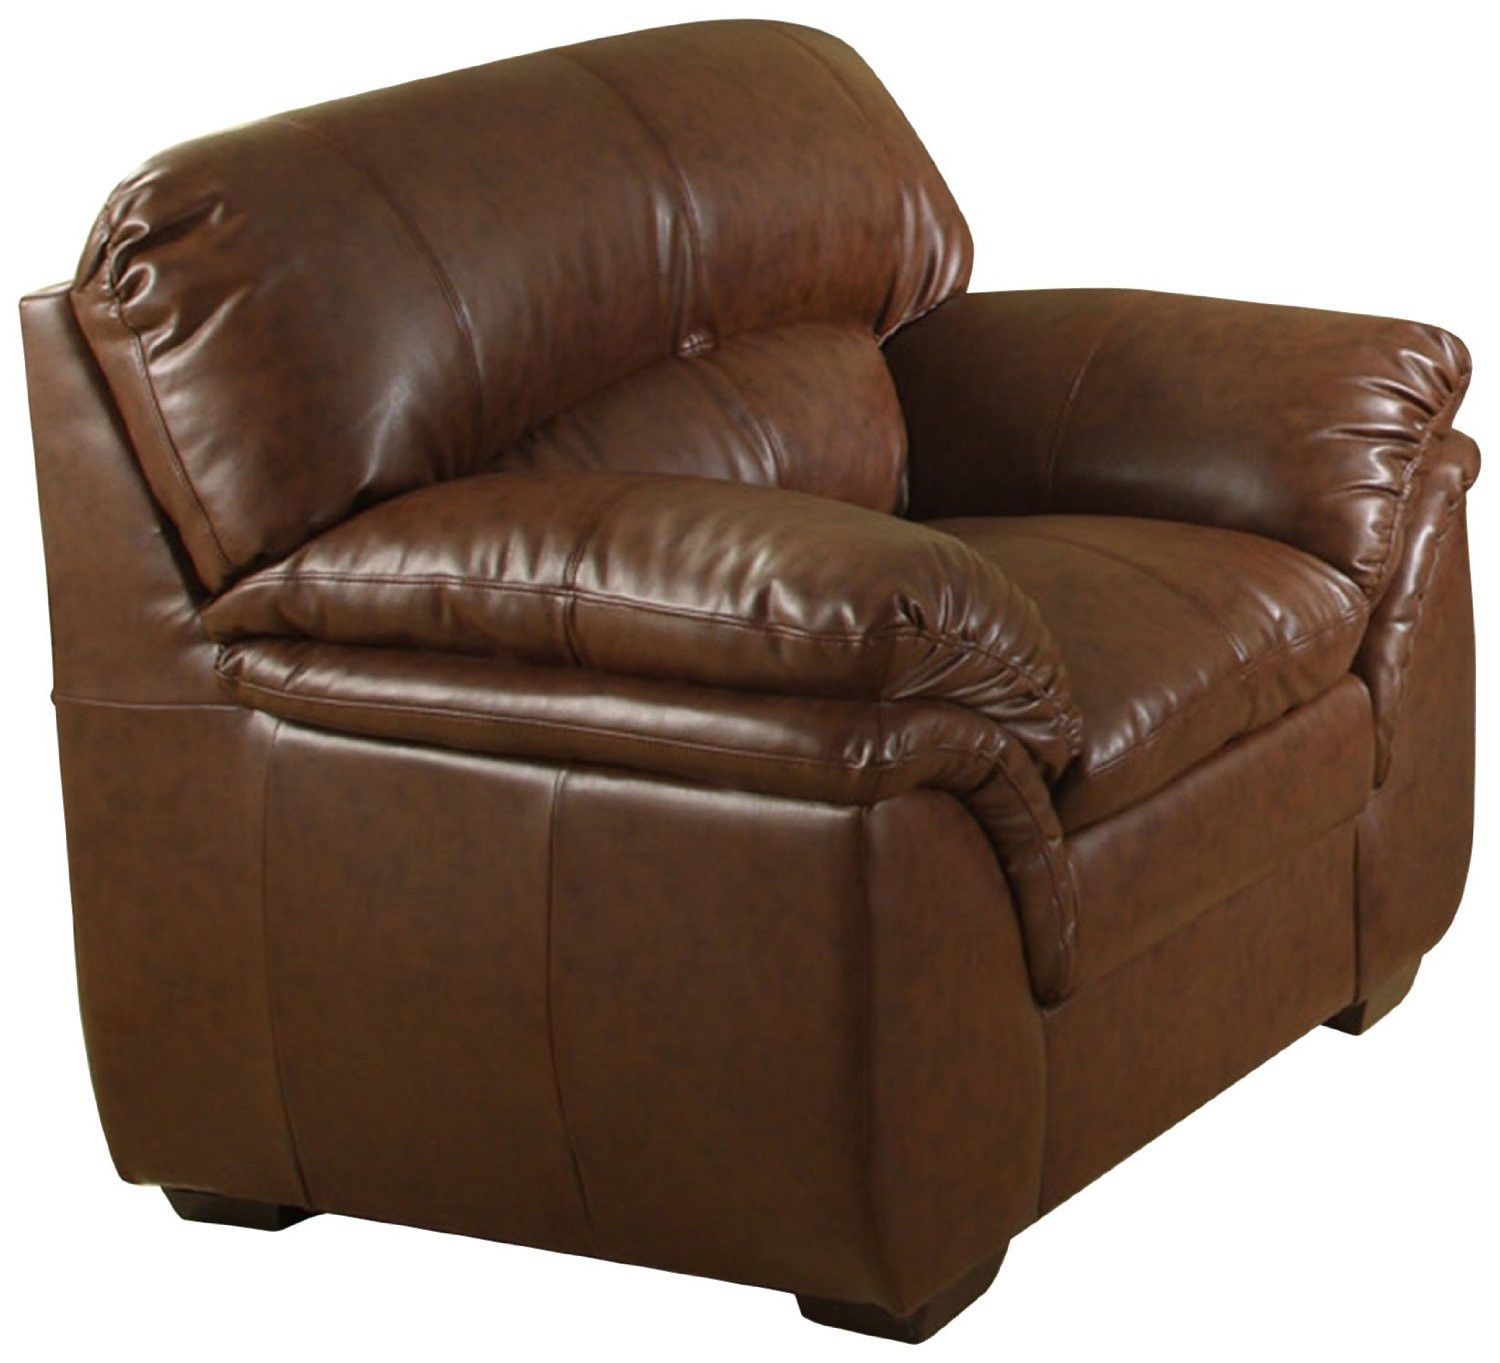 Overstuffed Chair Bonded Leather Chair Furniture Living Room Den Office